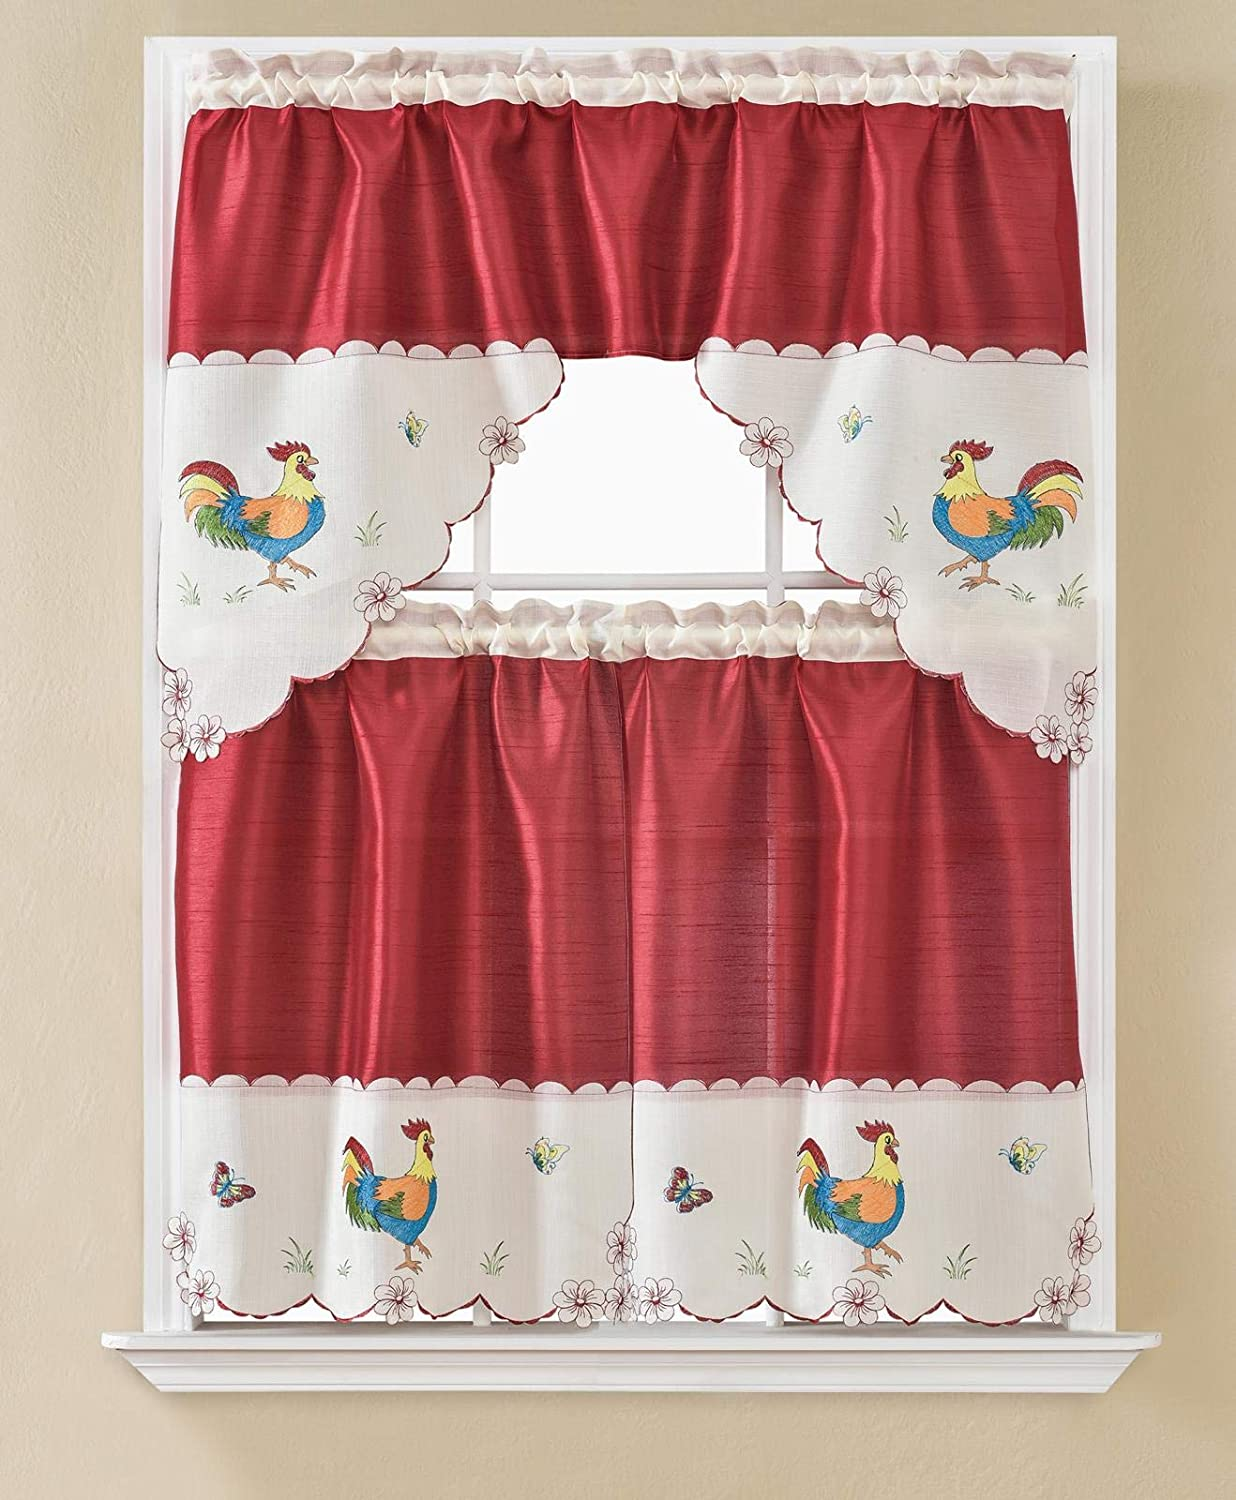 DiamondHome 3 Piece Embroidery Popular products Rooster Window Kitchen Café Cu Don't miss the campaign